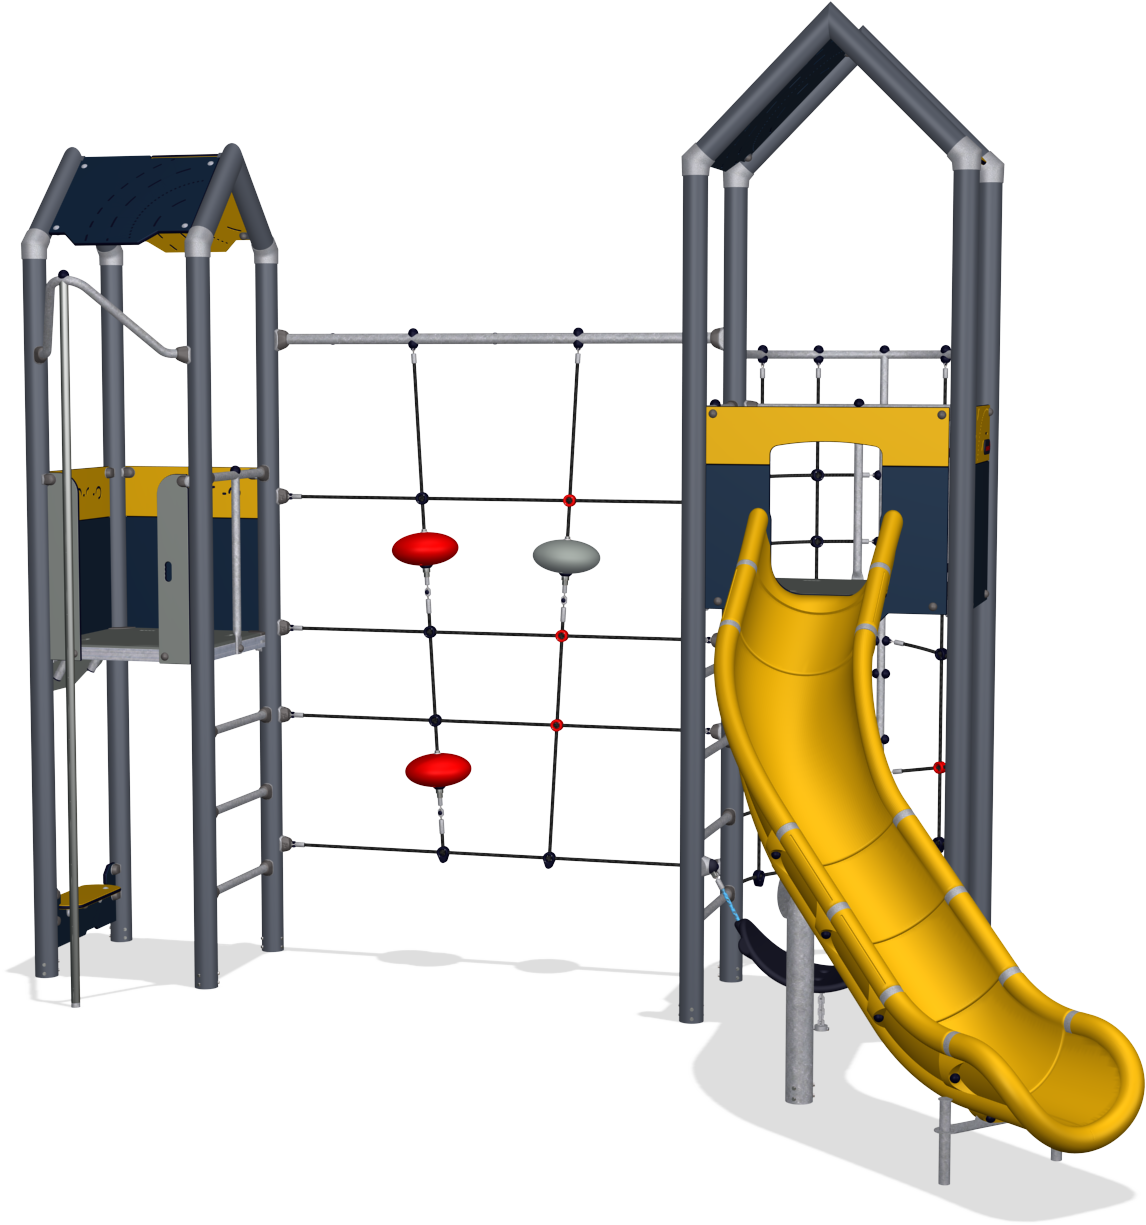 Park clipart outside playground. Double tower with climbing